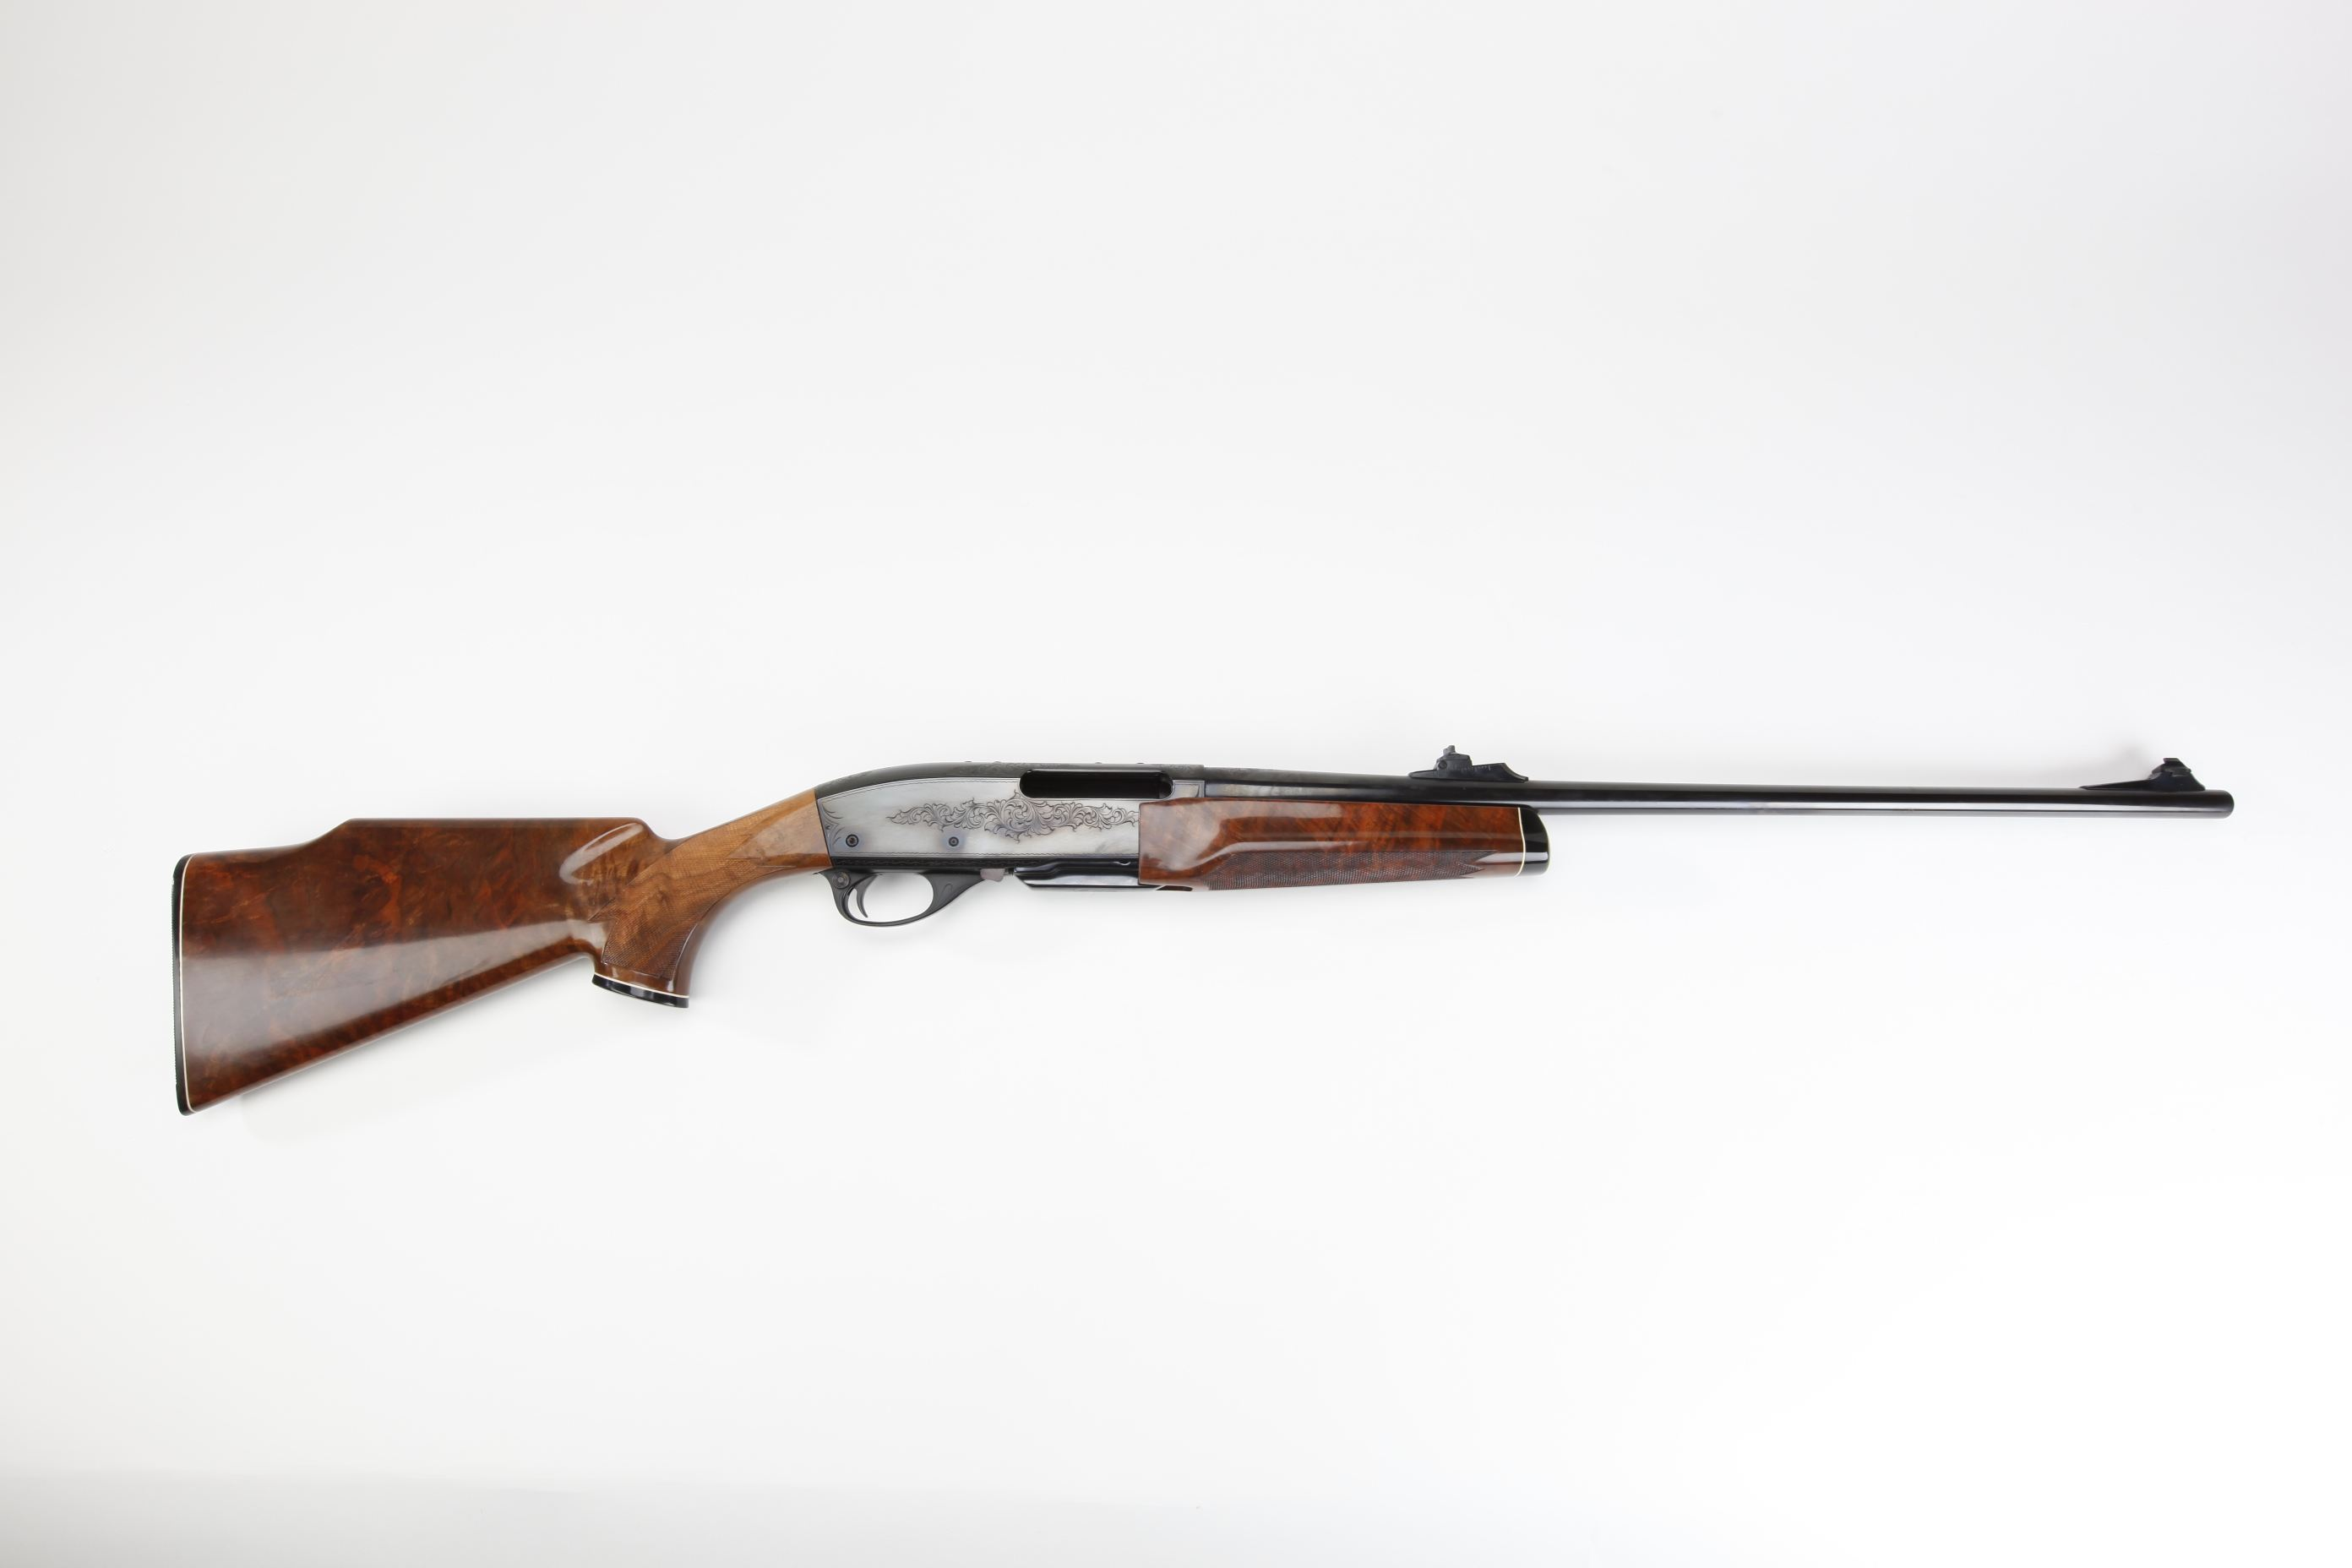 Remington Model 6 Slide Action Rifle